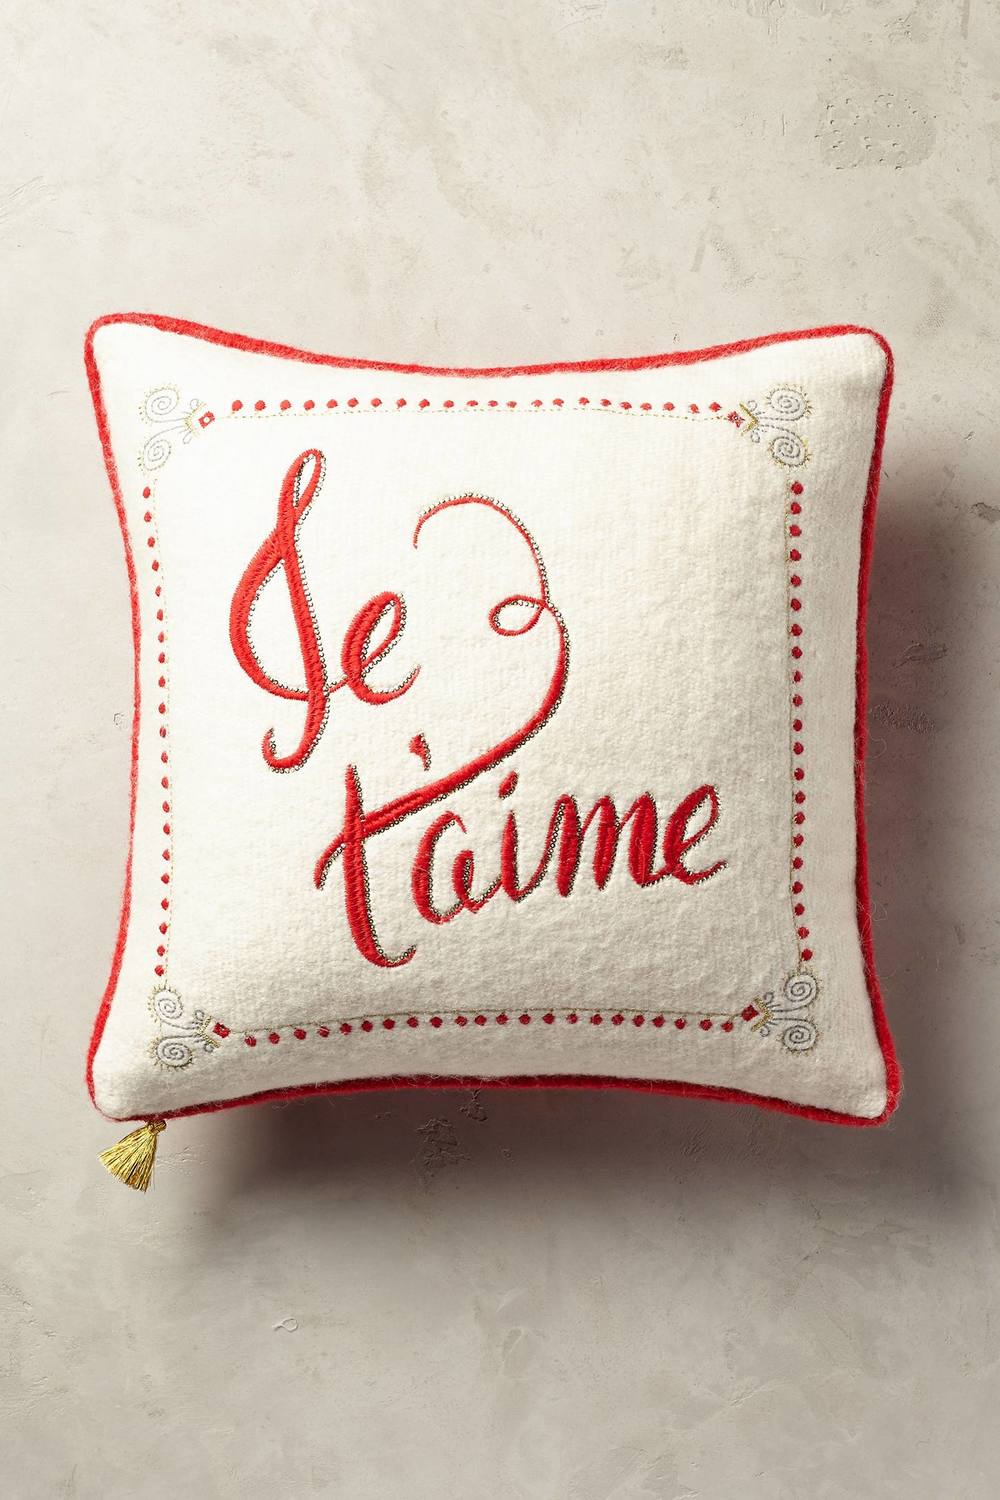 ANTHROPOLOGIE - JE T'AIME FESTIVE CUSHION £58